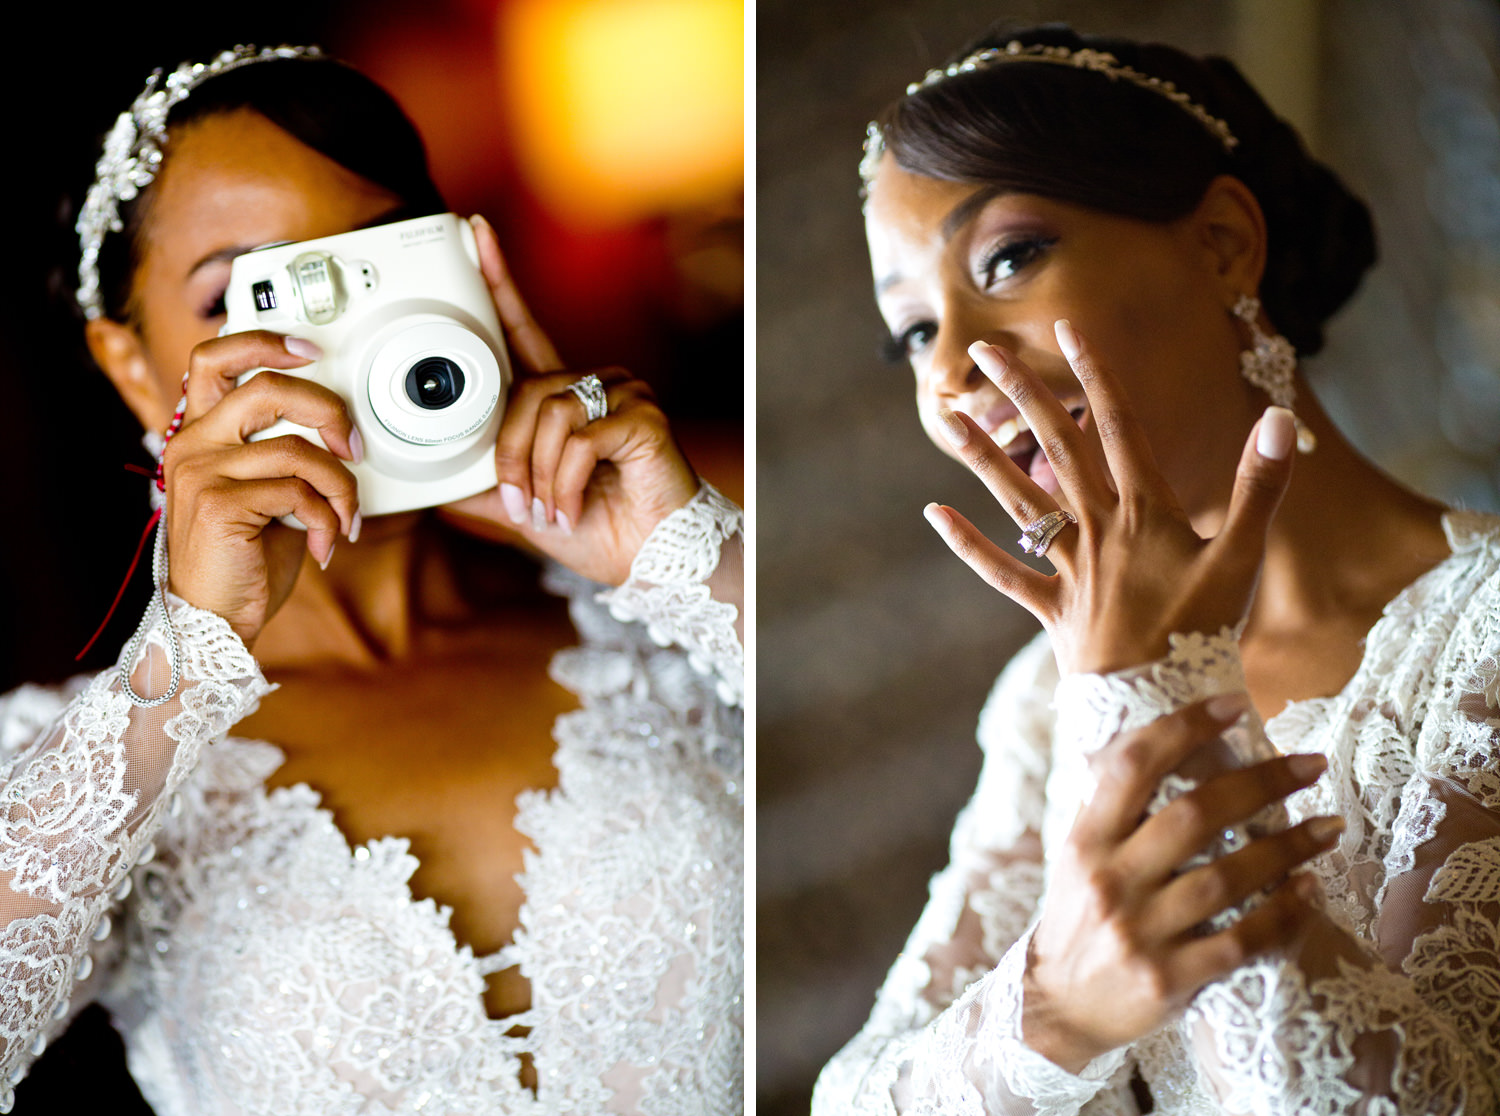 Pinery-at-the-hill-wedding-photographer-tomkphoto-45.jpg